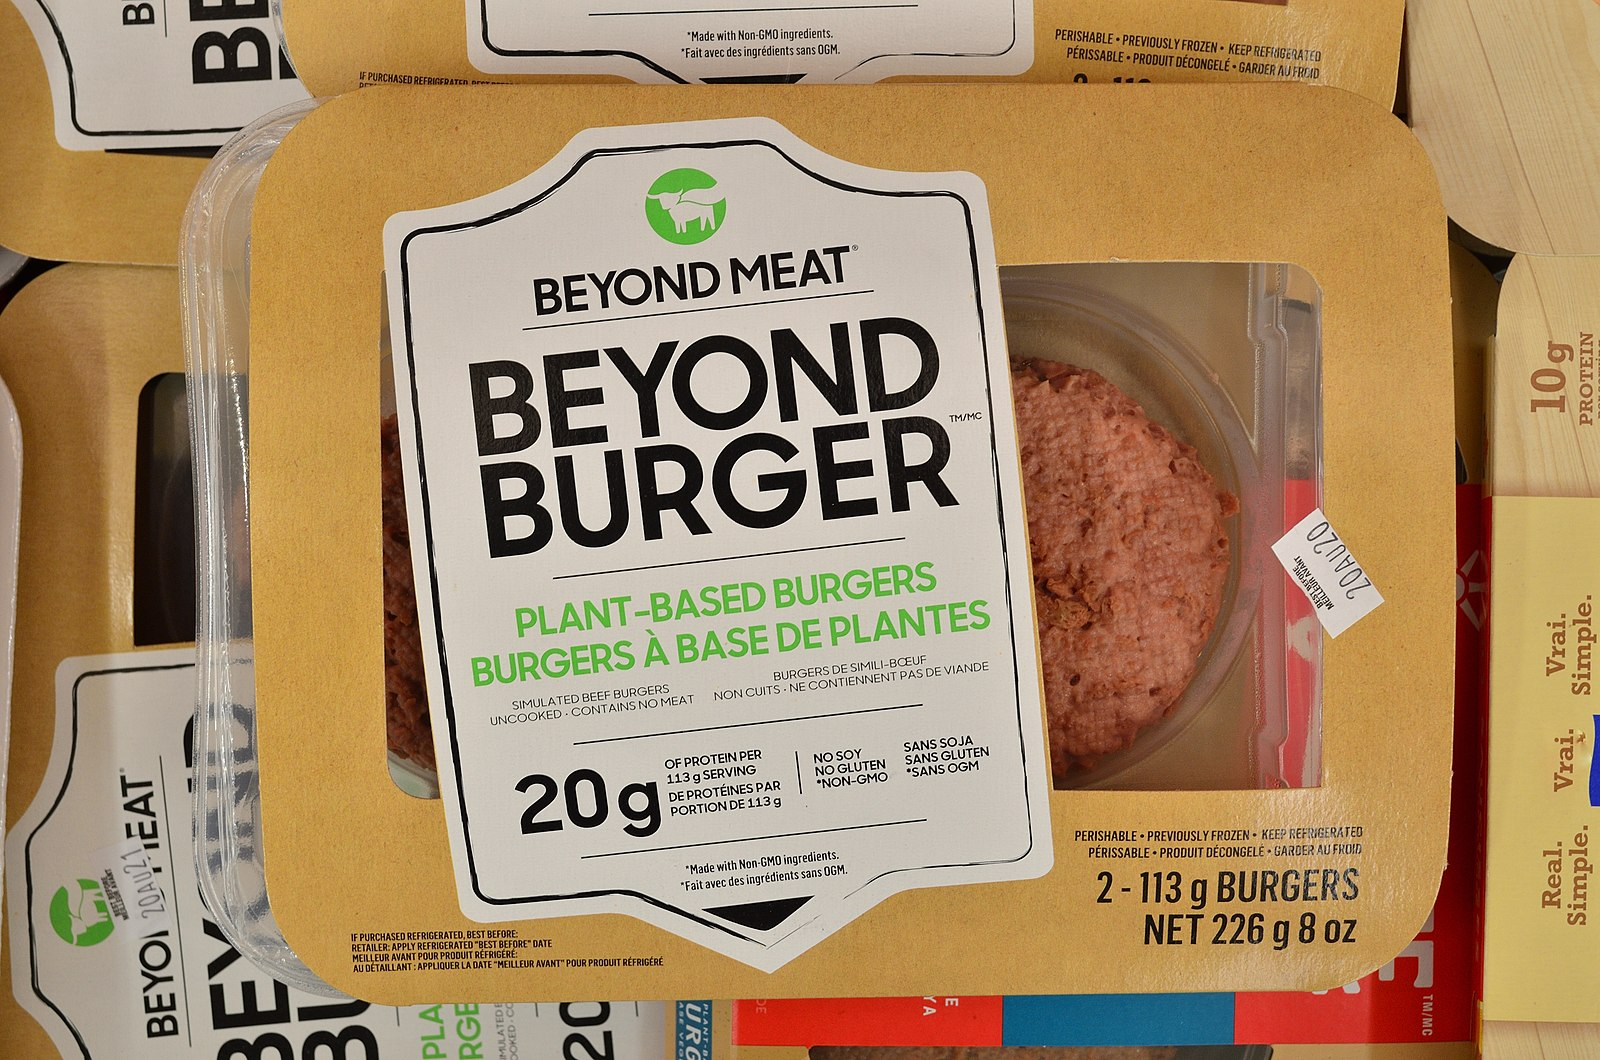 Difference Between Beyond Meat and Real Meat